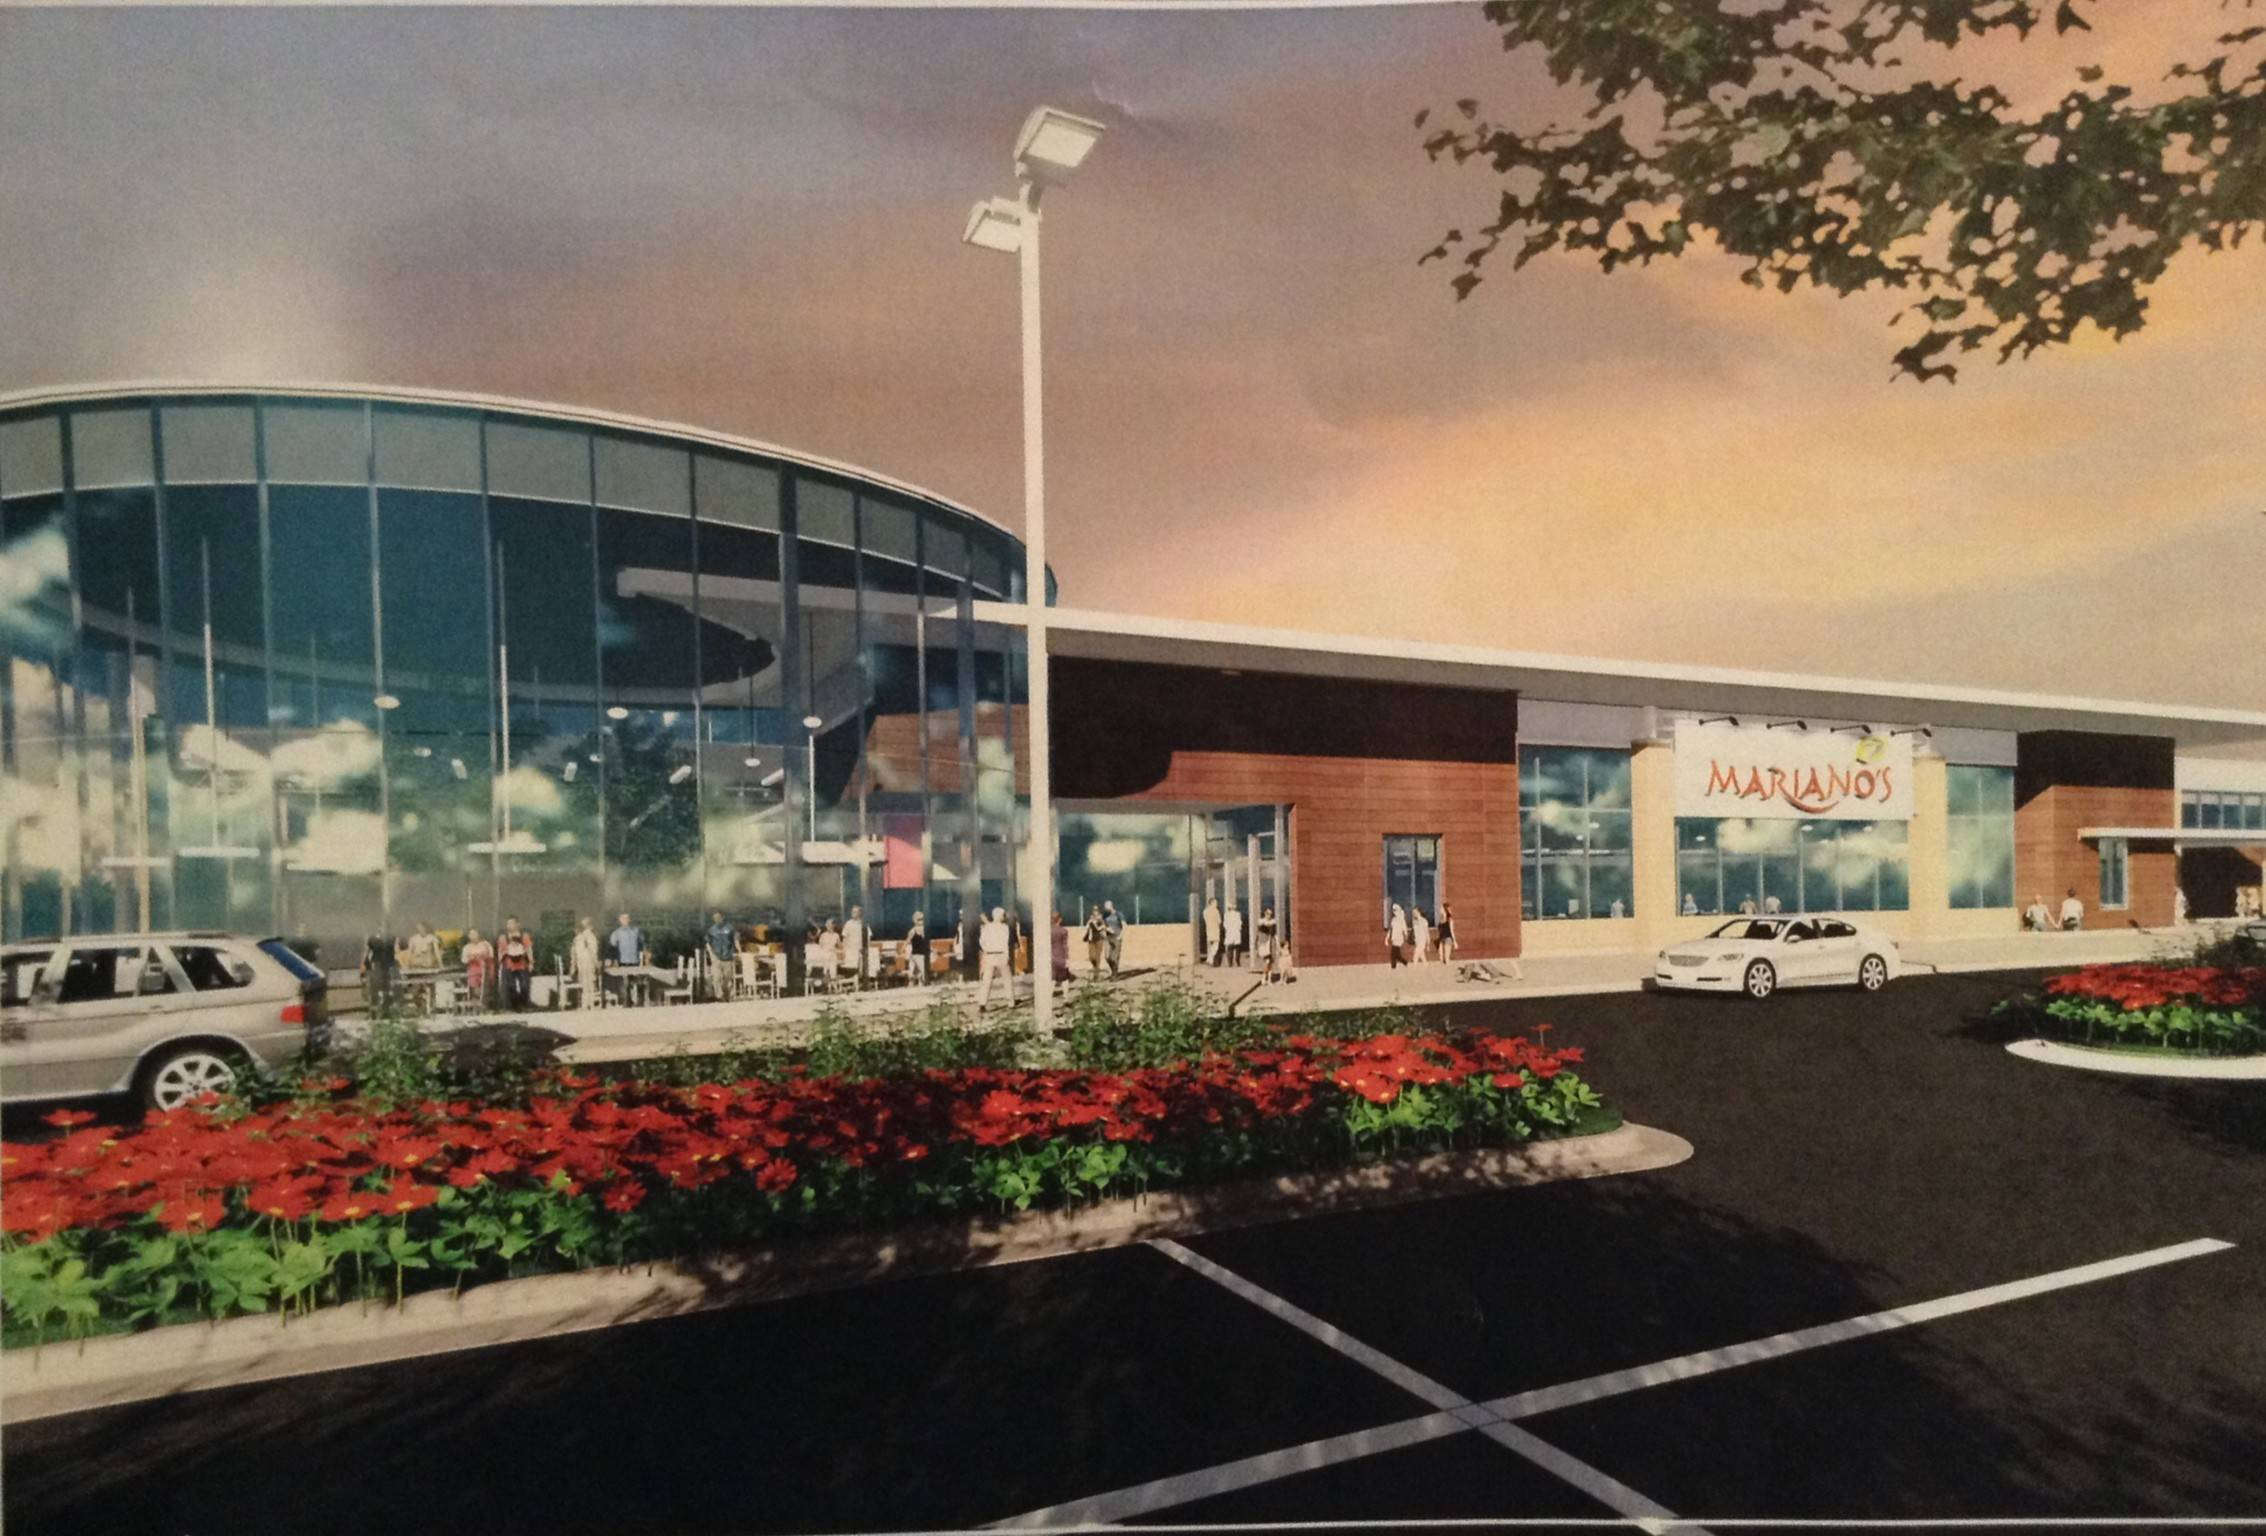 Despite sale, Mariano's plans to build in Naperville, Bloomingdale, Des Plaines